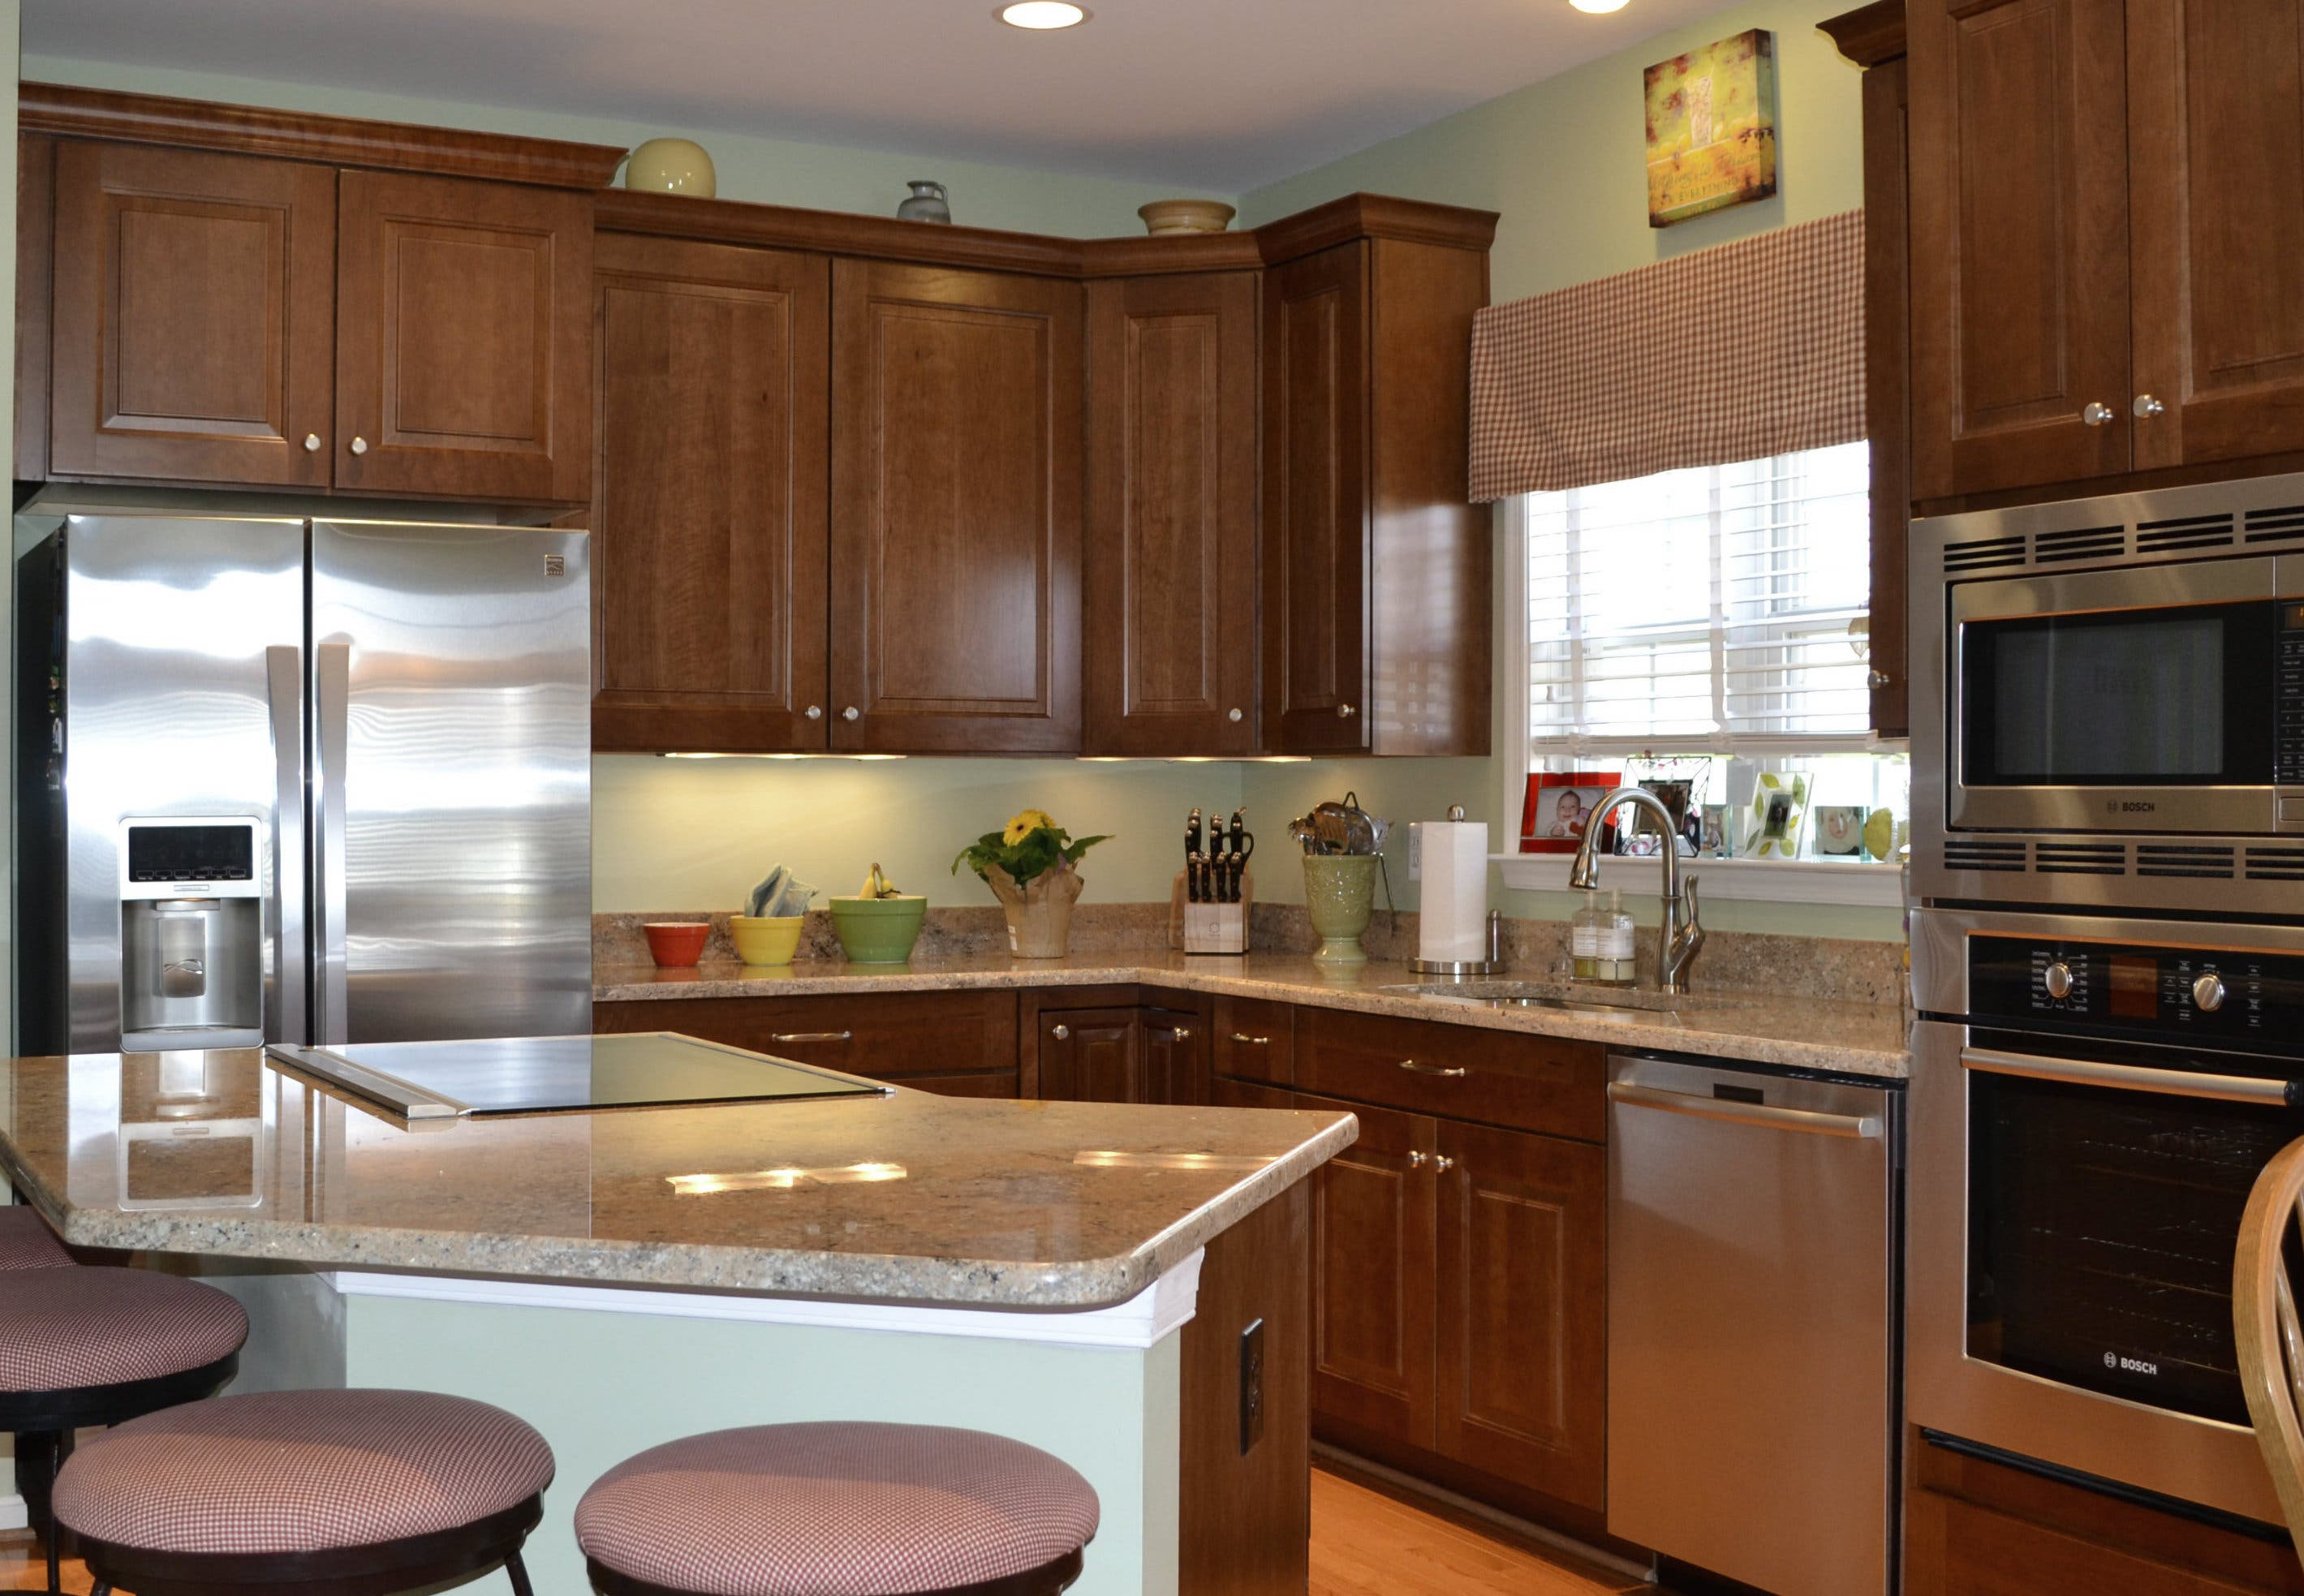 How Much Does It Cost to Build the Kitchen of Your Dreams ...